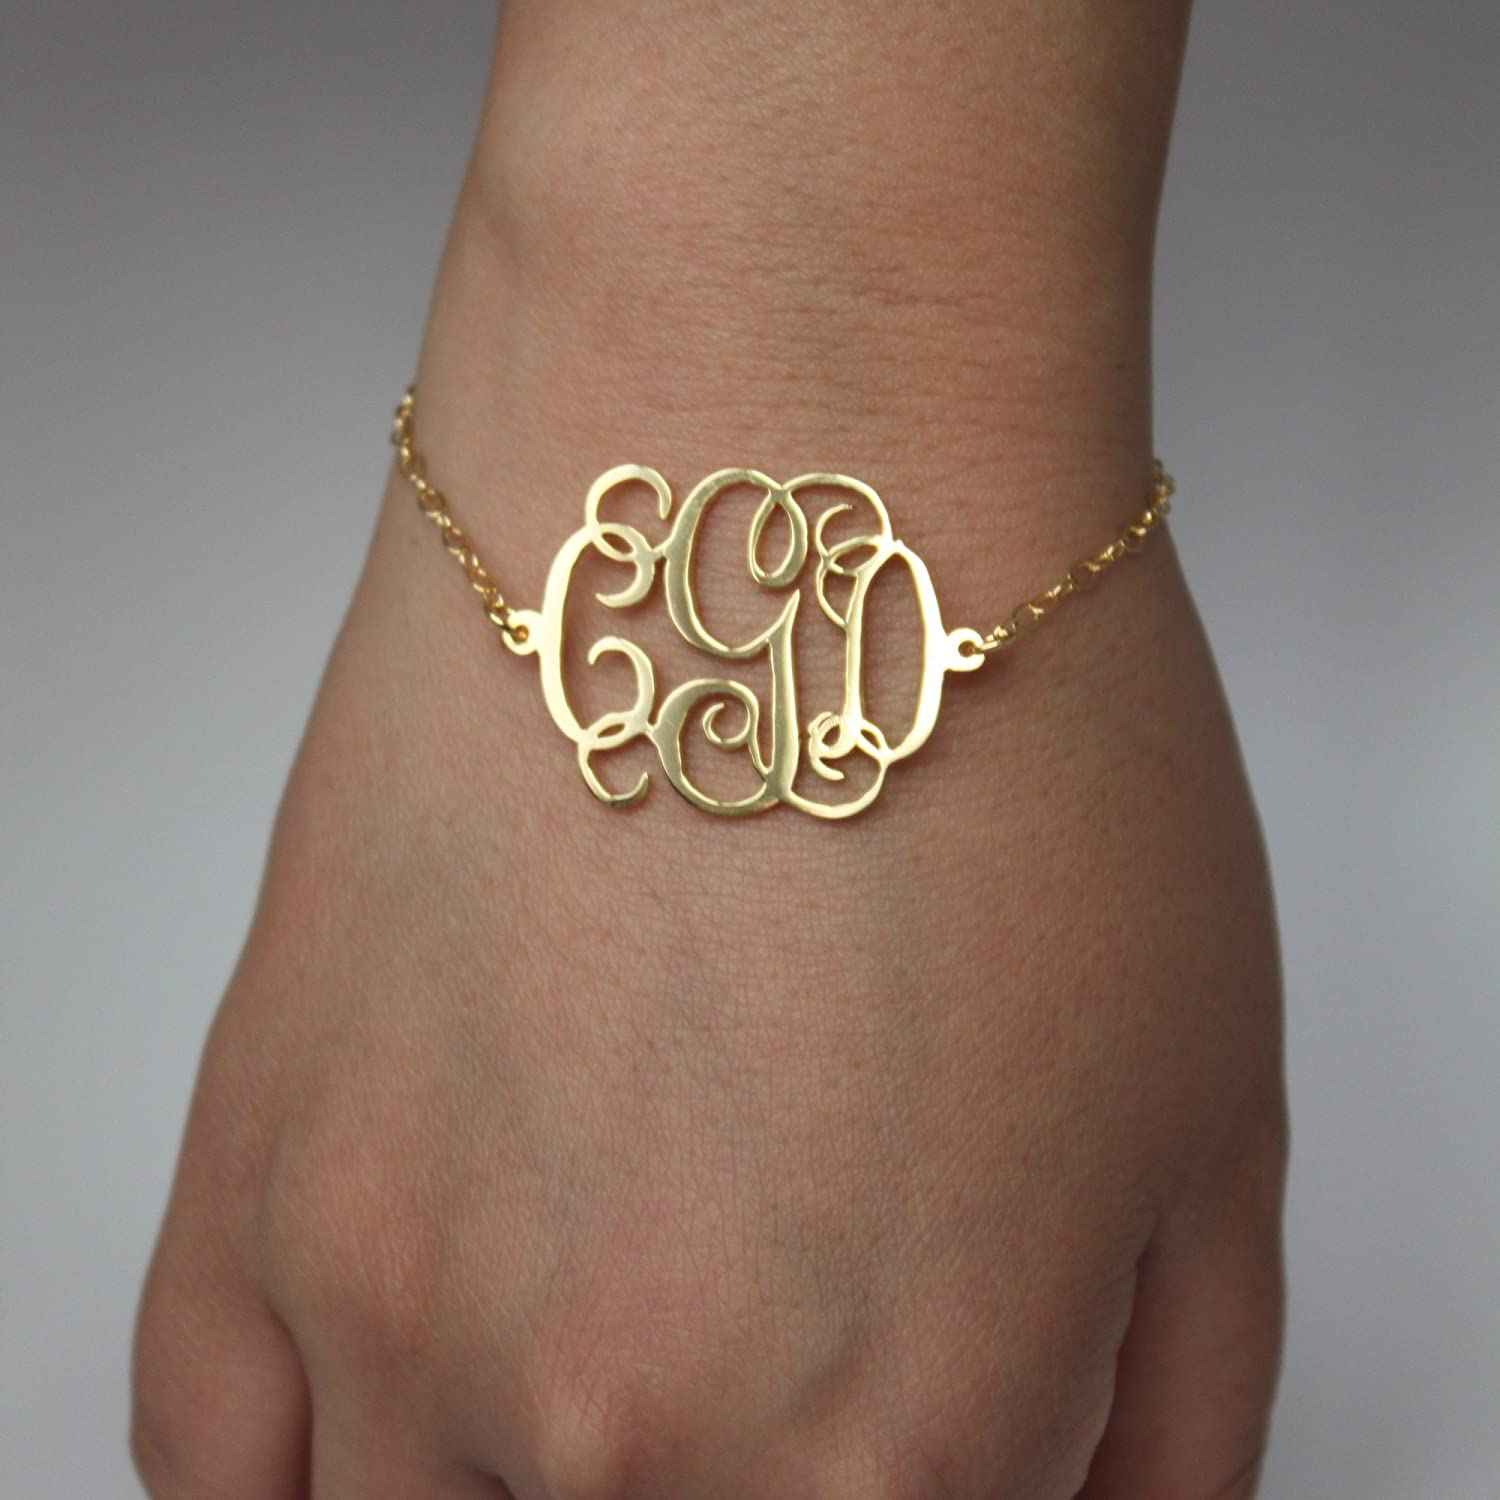 Monogram Bracelet - 1.2 inch, 100% Sterling Silver, Custom Made Monogram Bracelet with Any Initial, monogrammed gifts